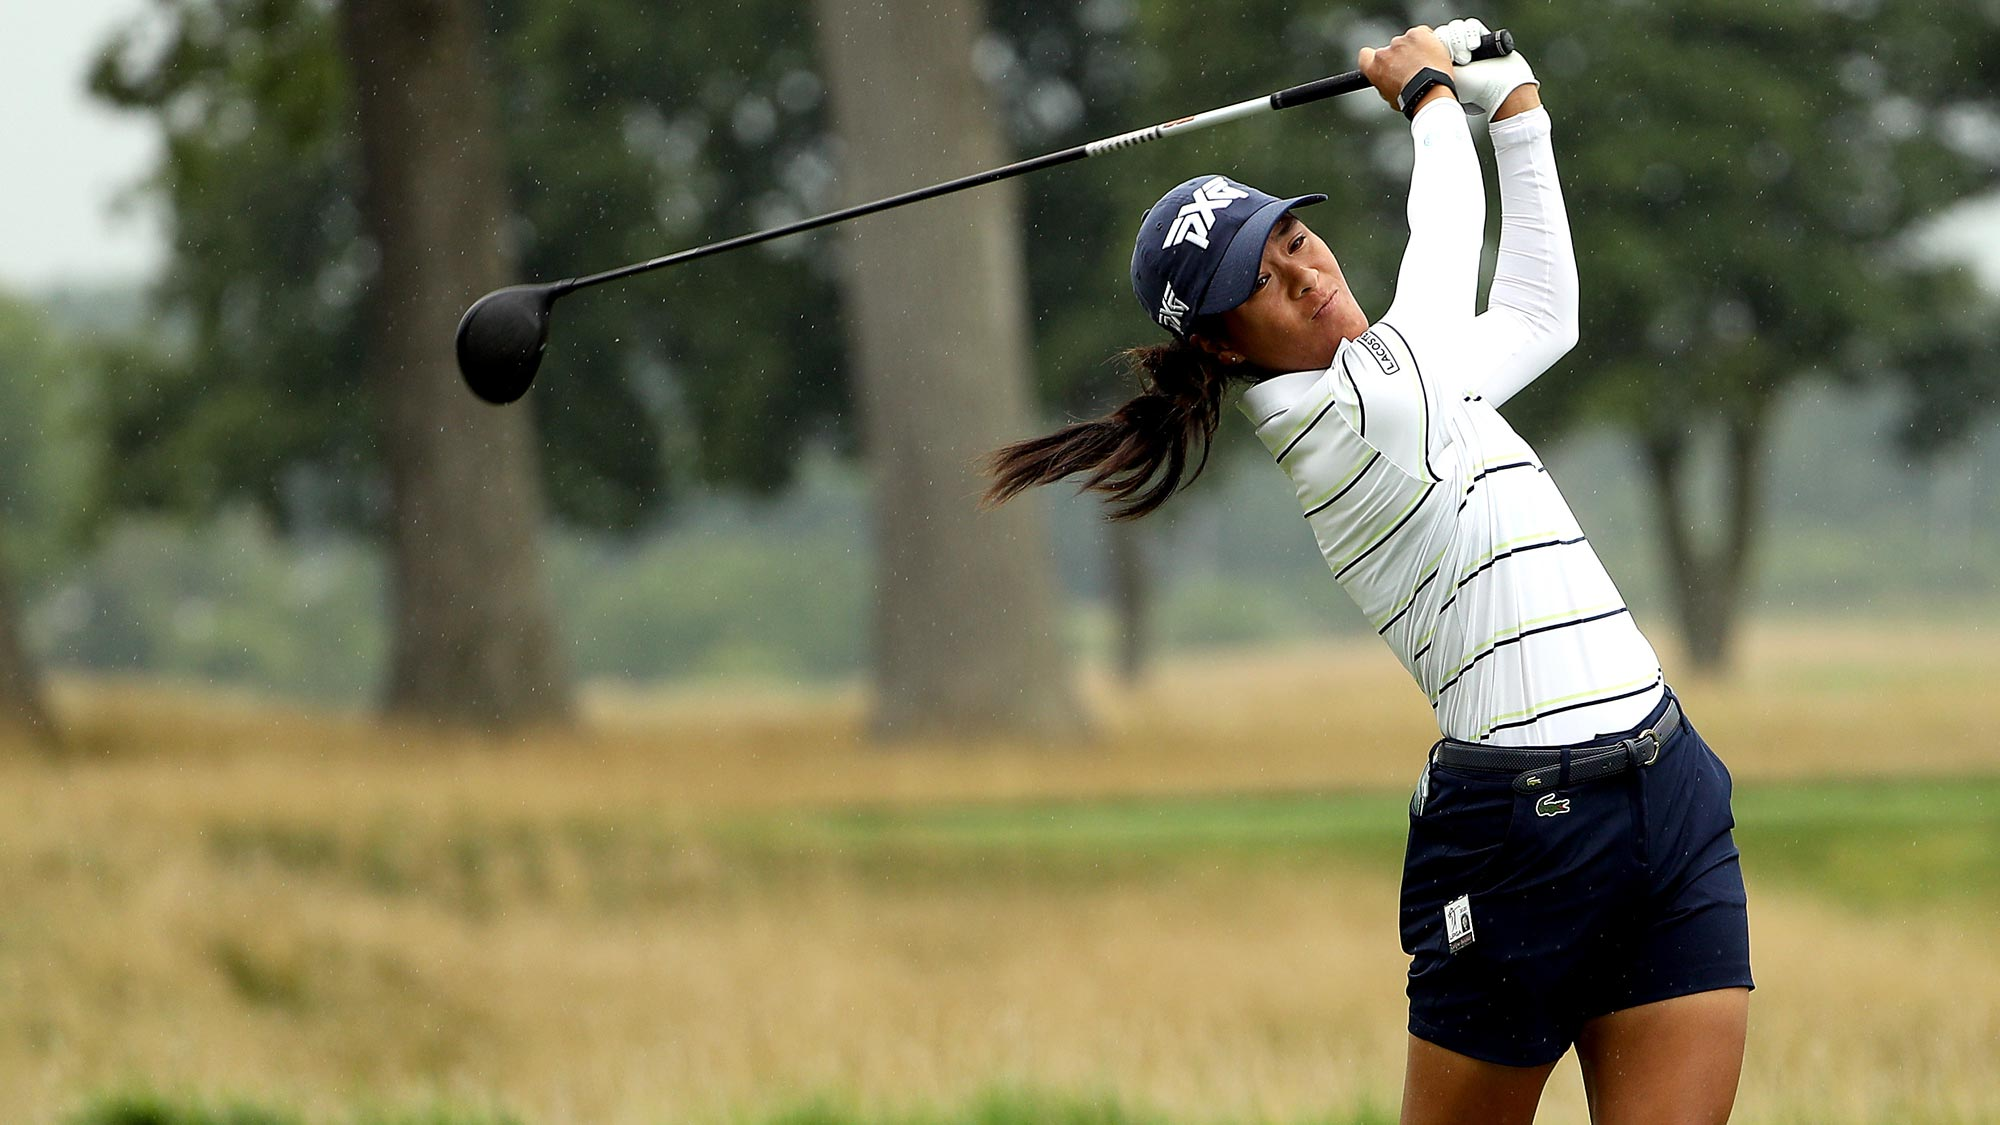 Celine Boutier of France plays her shot from the 17th tee during the second round of the LPGA Drive On Championship